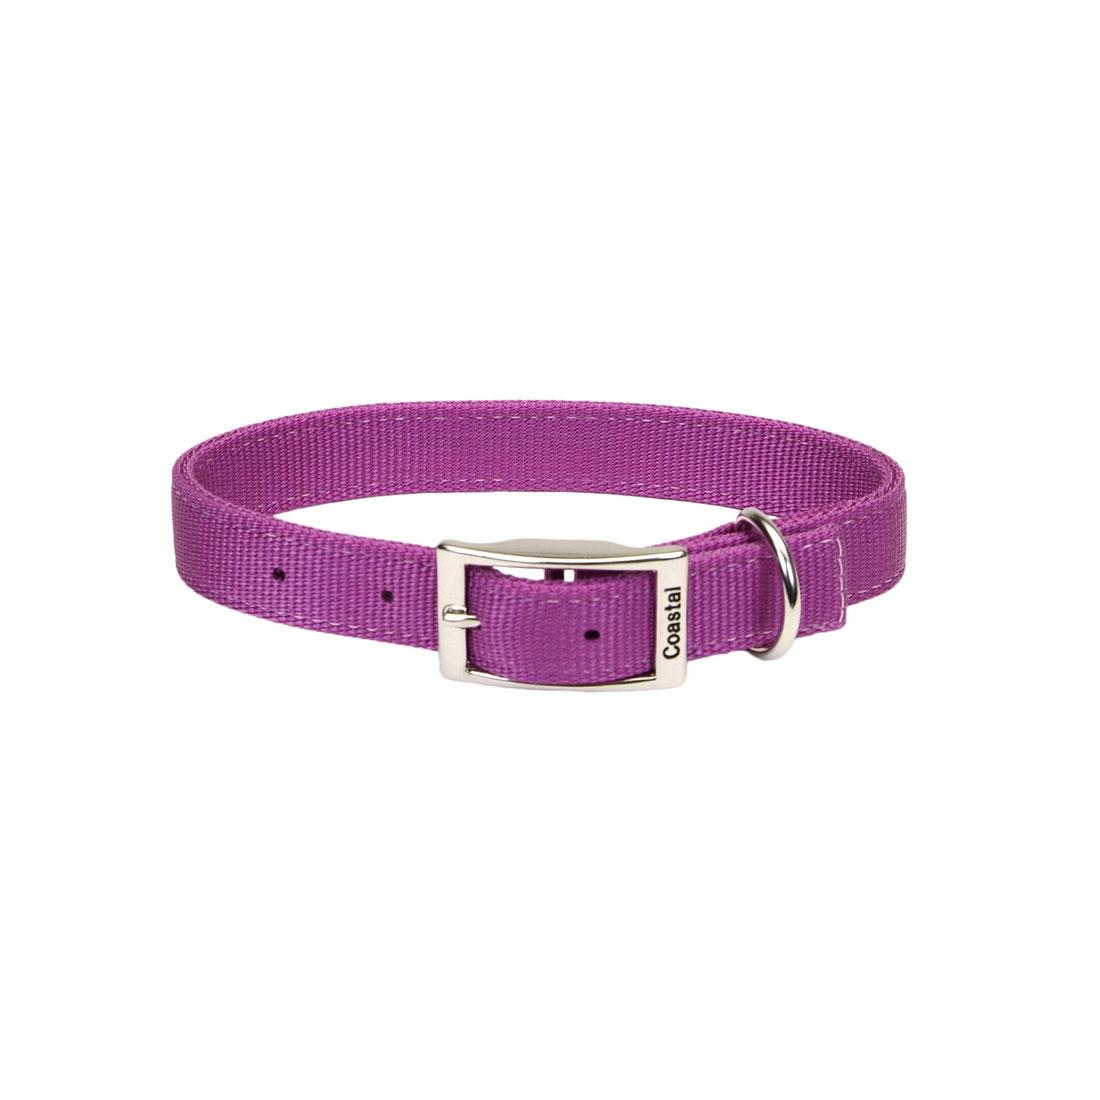 Coastal Double-Ply Dog Collar, Orchid Image